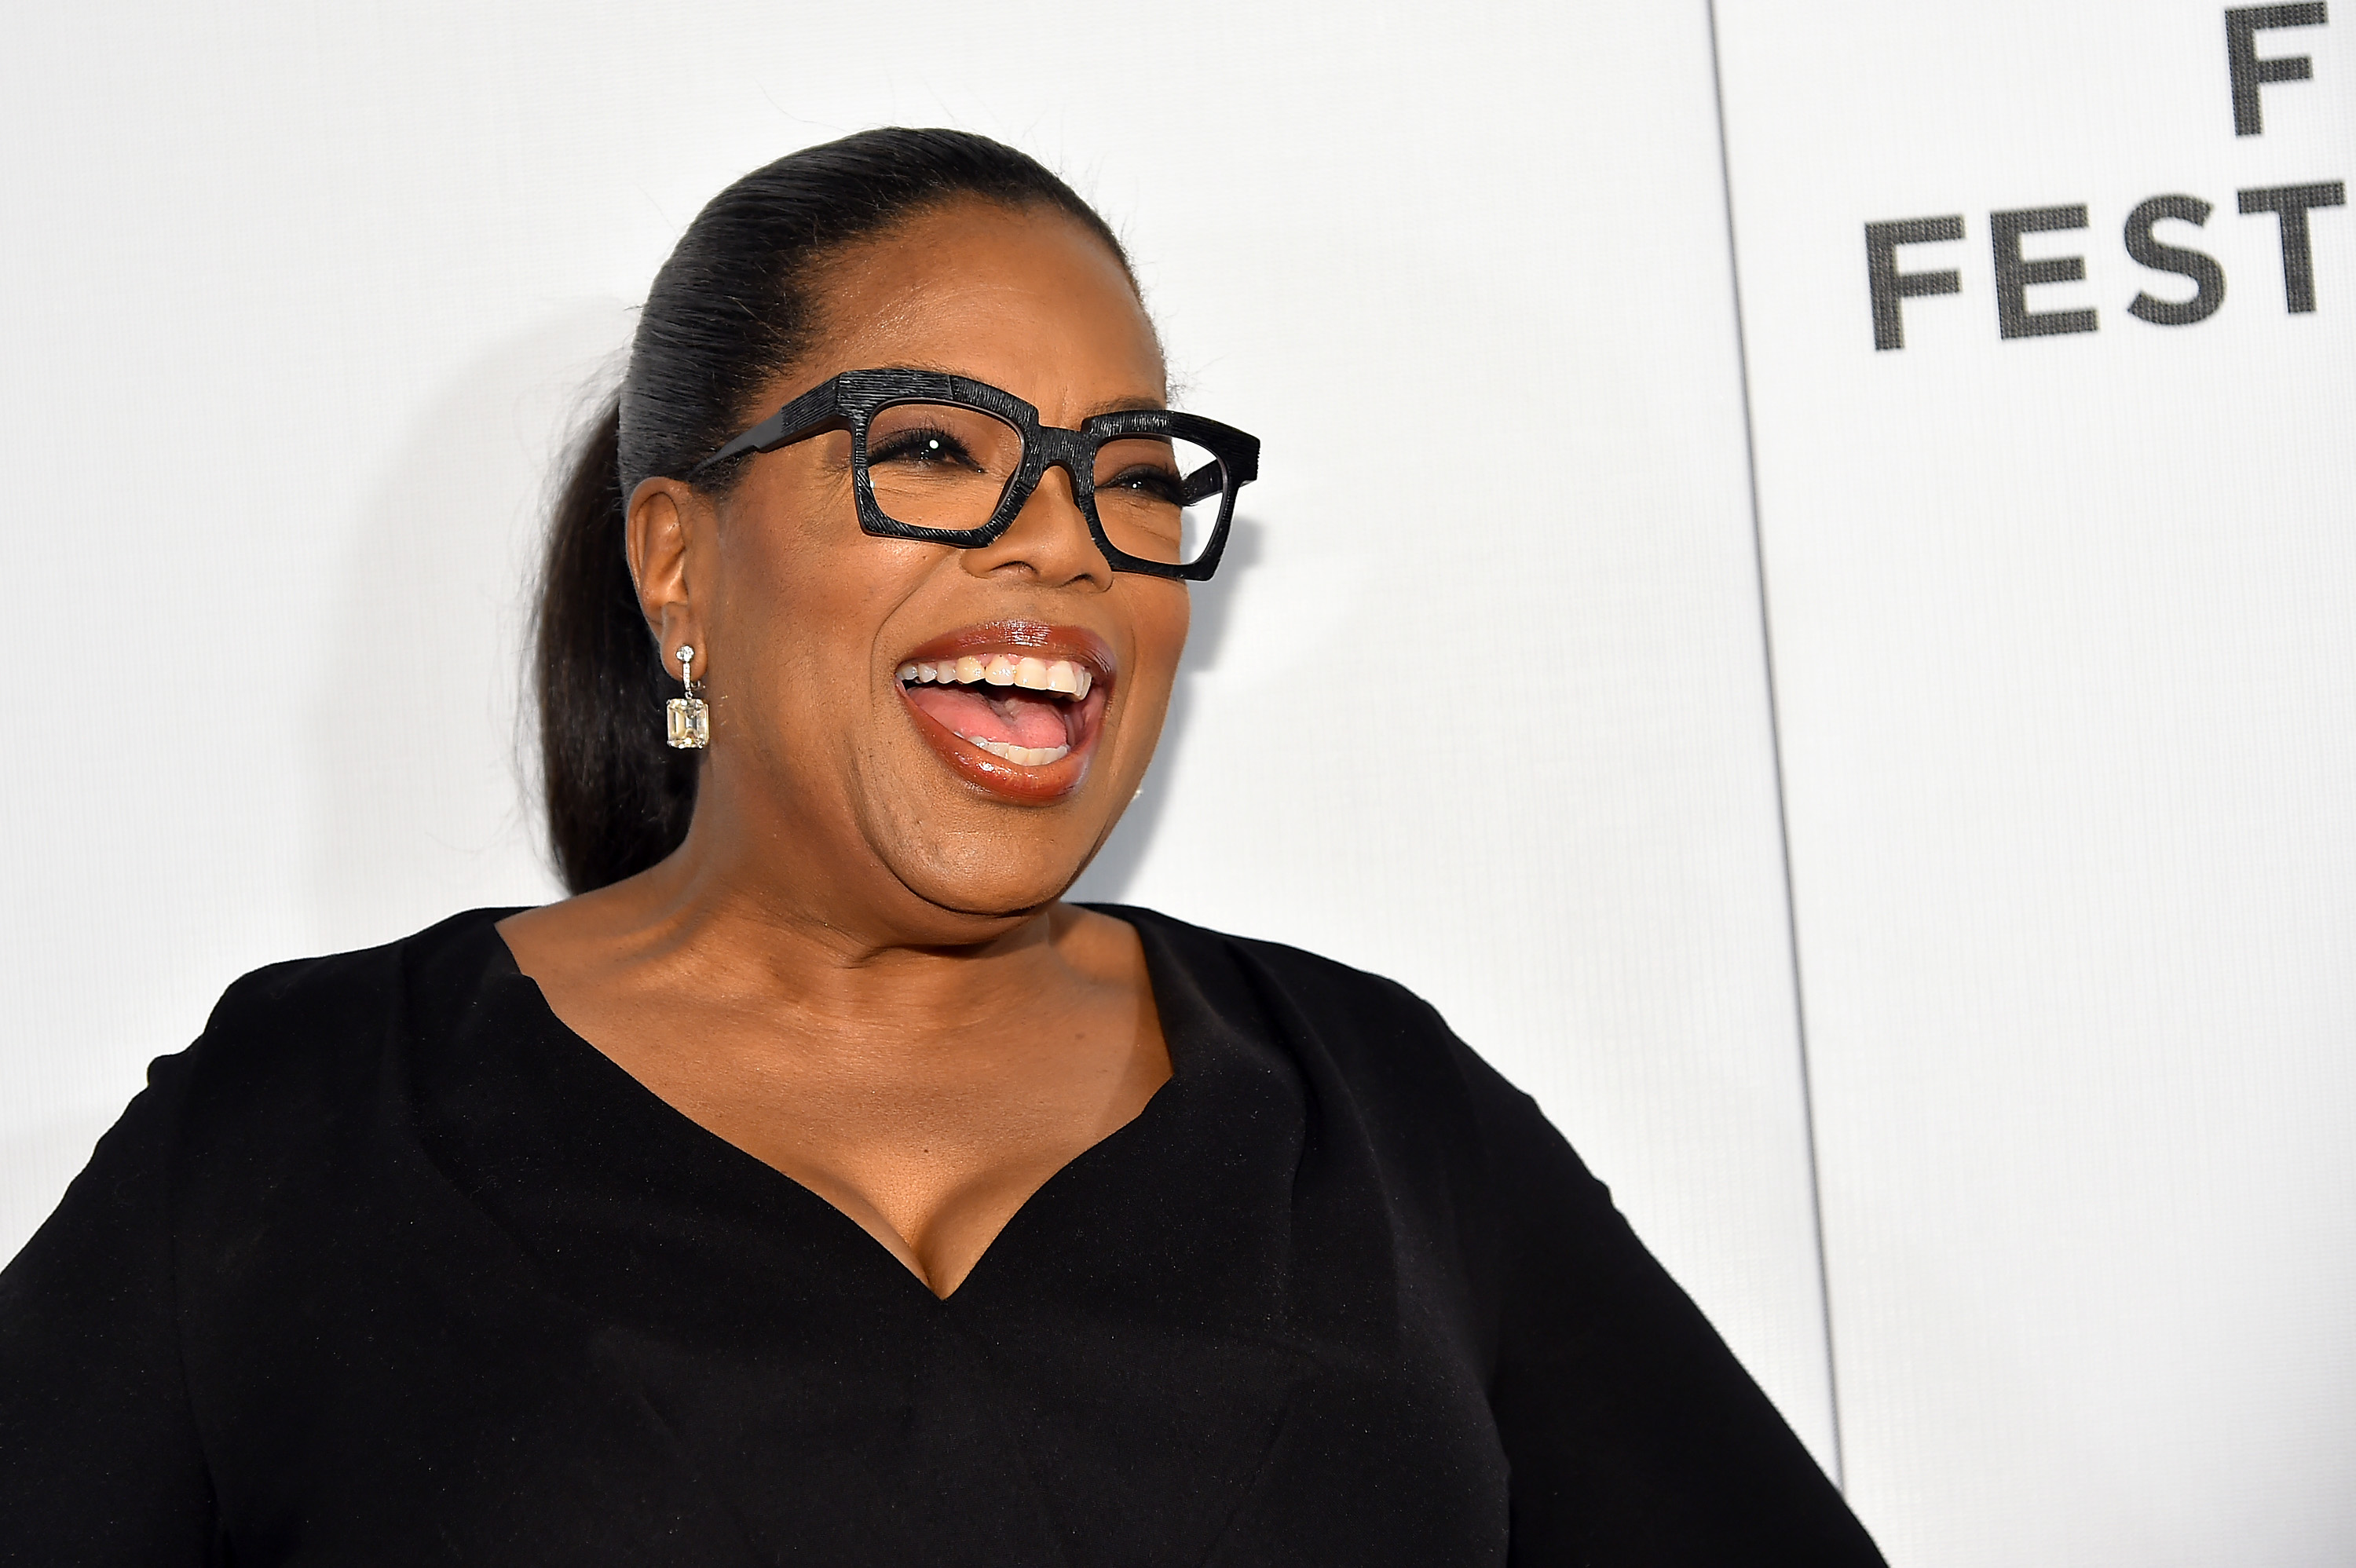 Oprah Winfrey in New York on April 20, 2016.